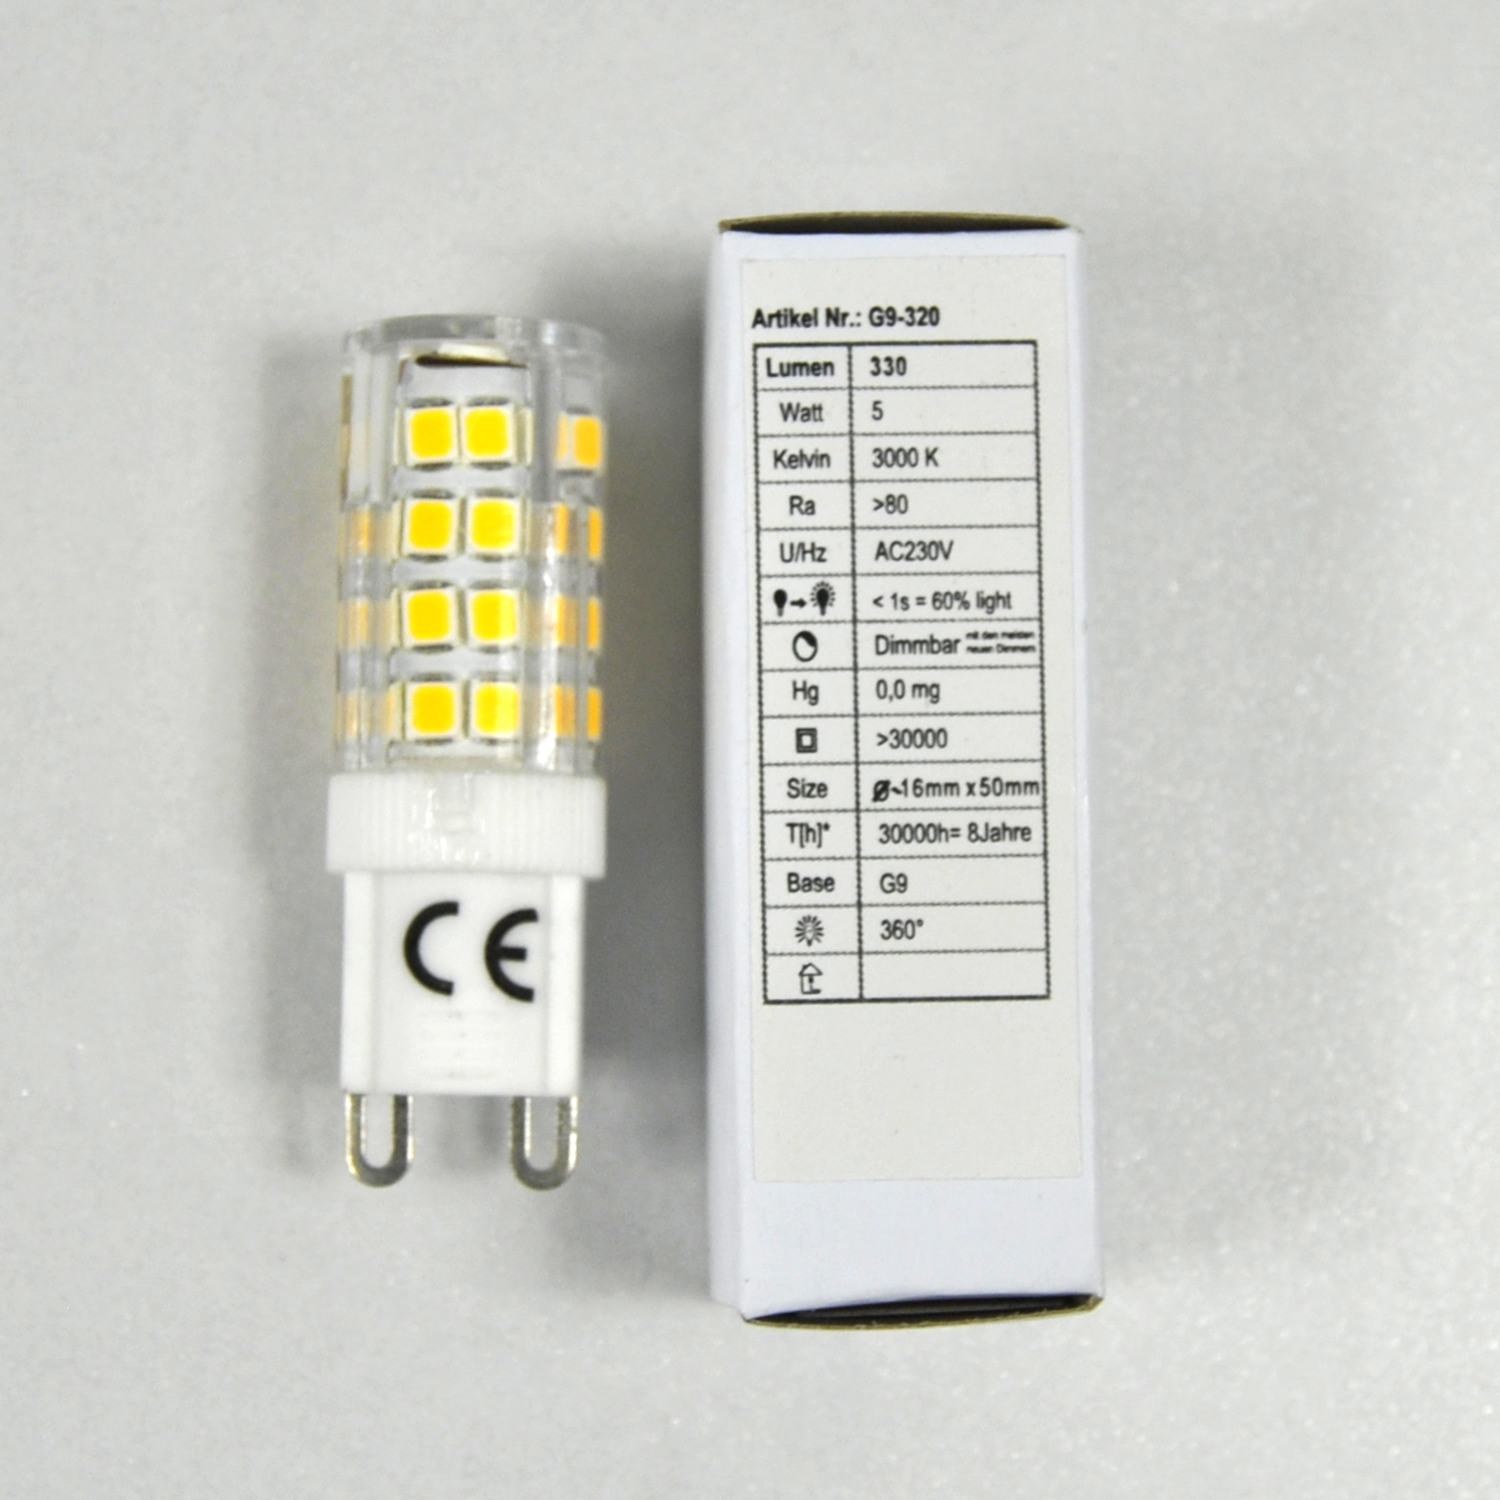 LED G9 5W Sparlampe Energiesparlampe 33-SMD LED´s 5 W warmweiß 50mm